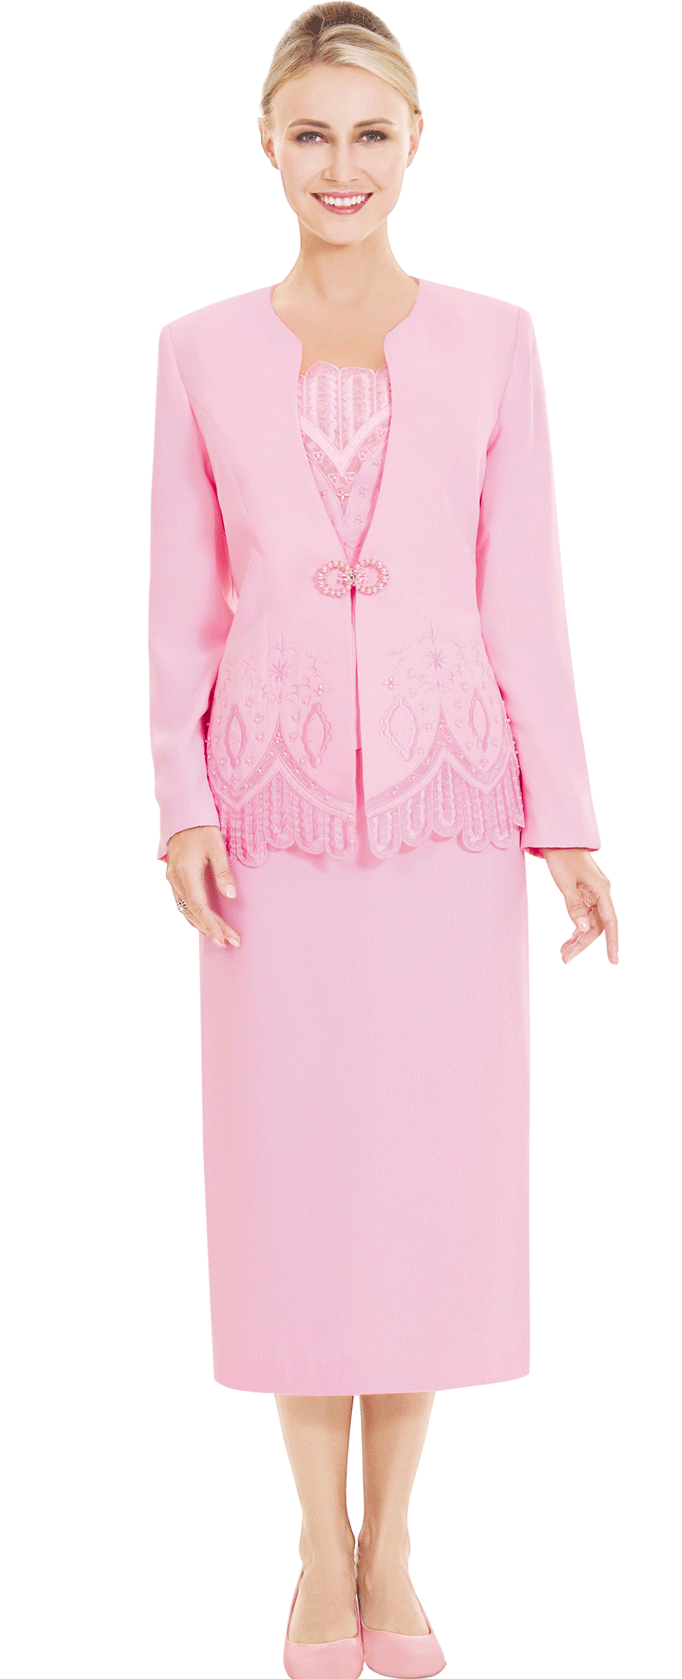 Nina Massini Suit 2523-Pink - Church Suits For Less